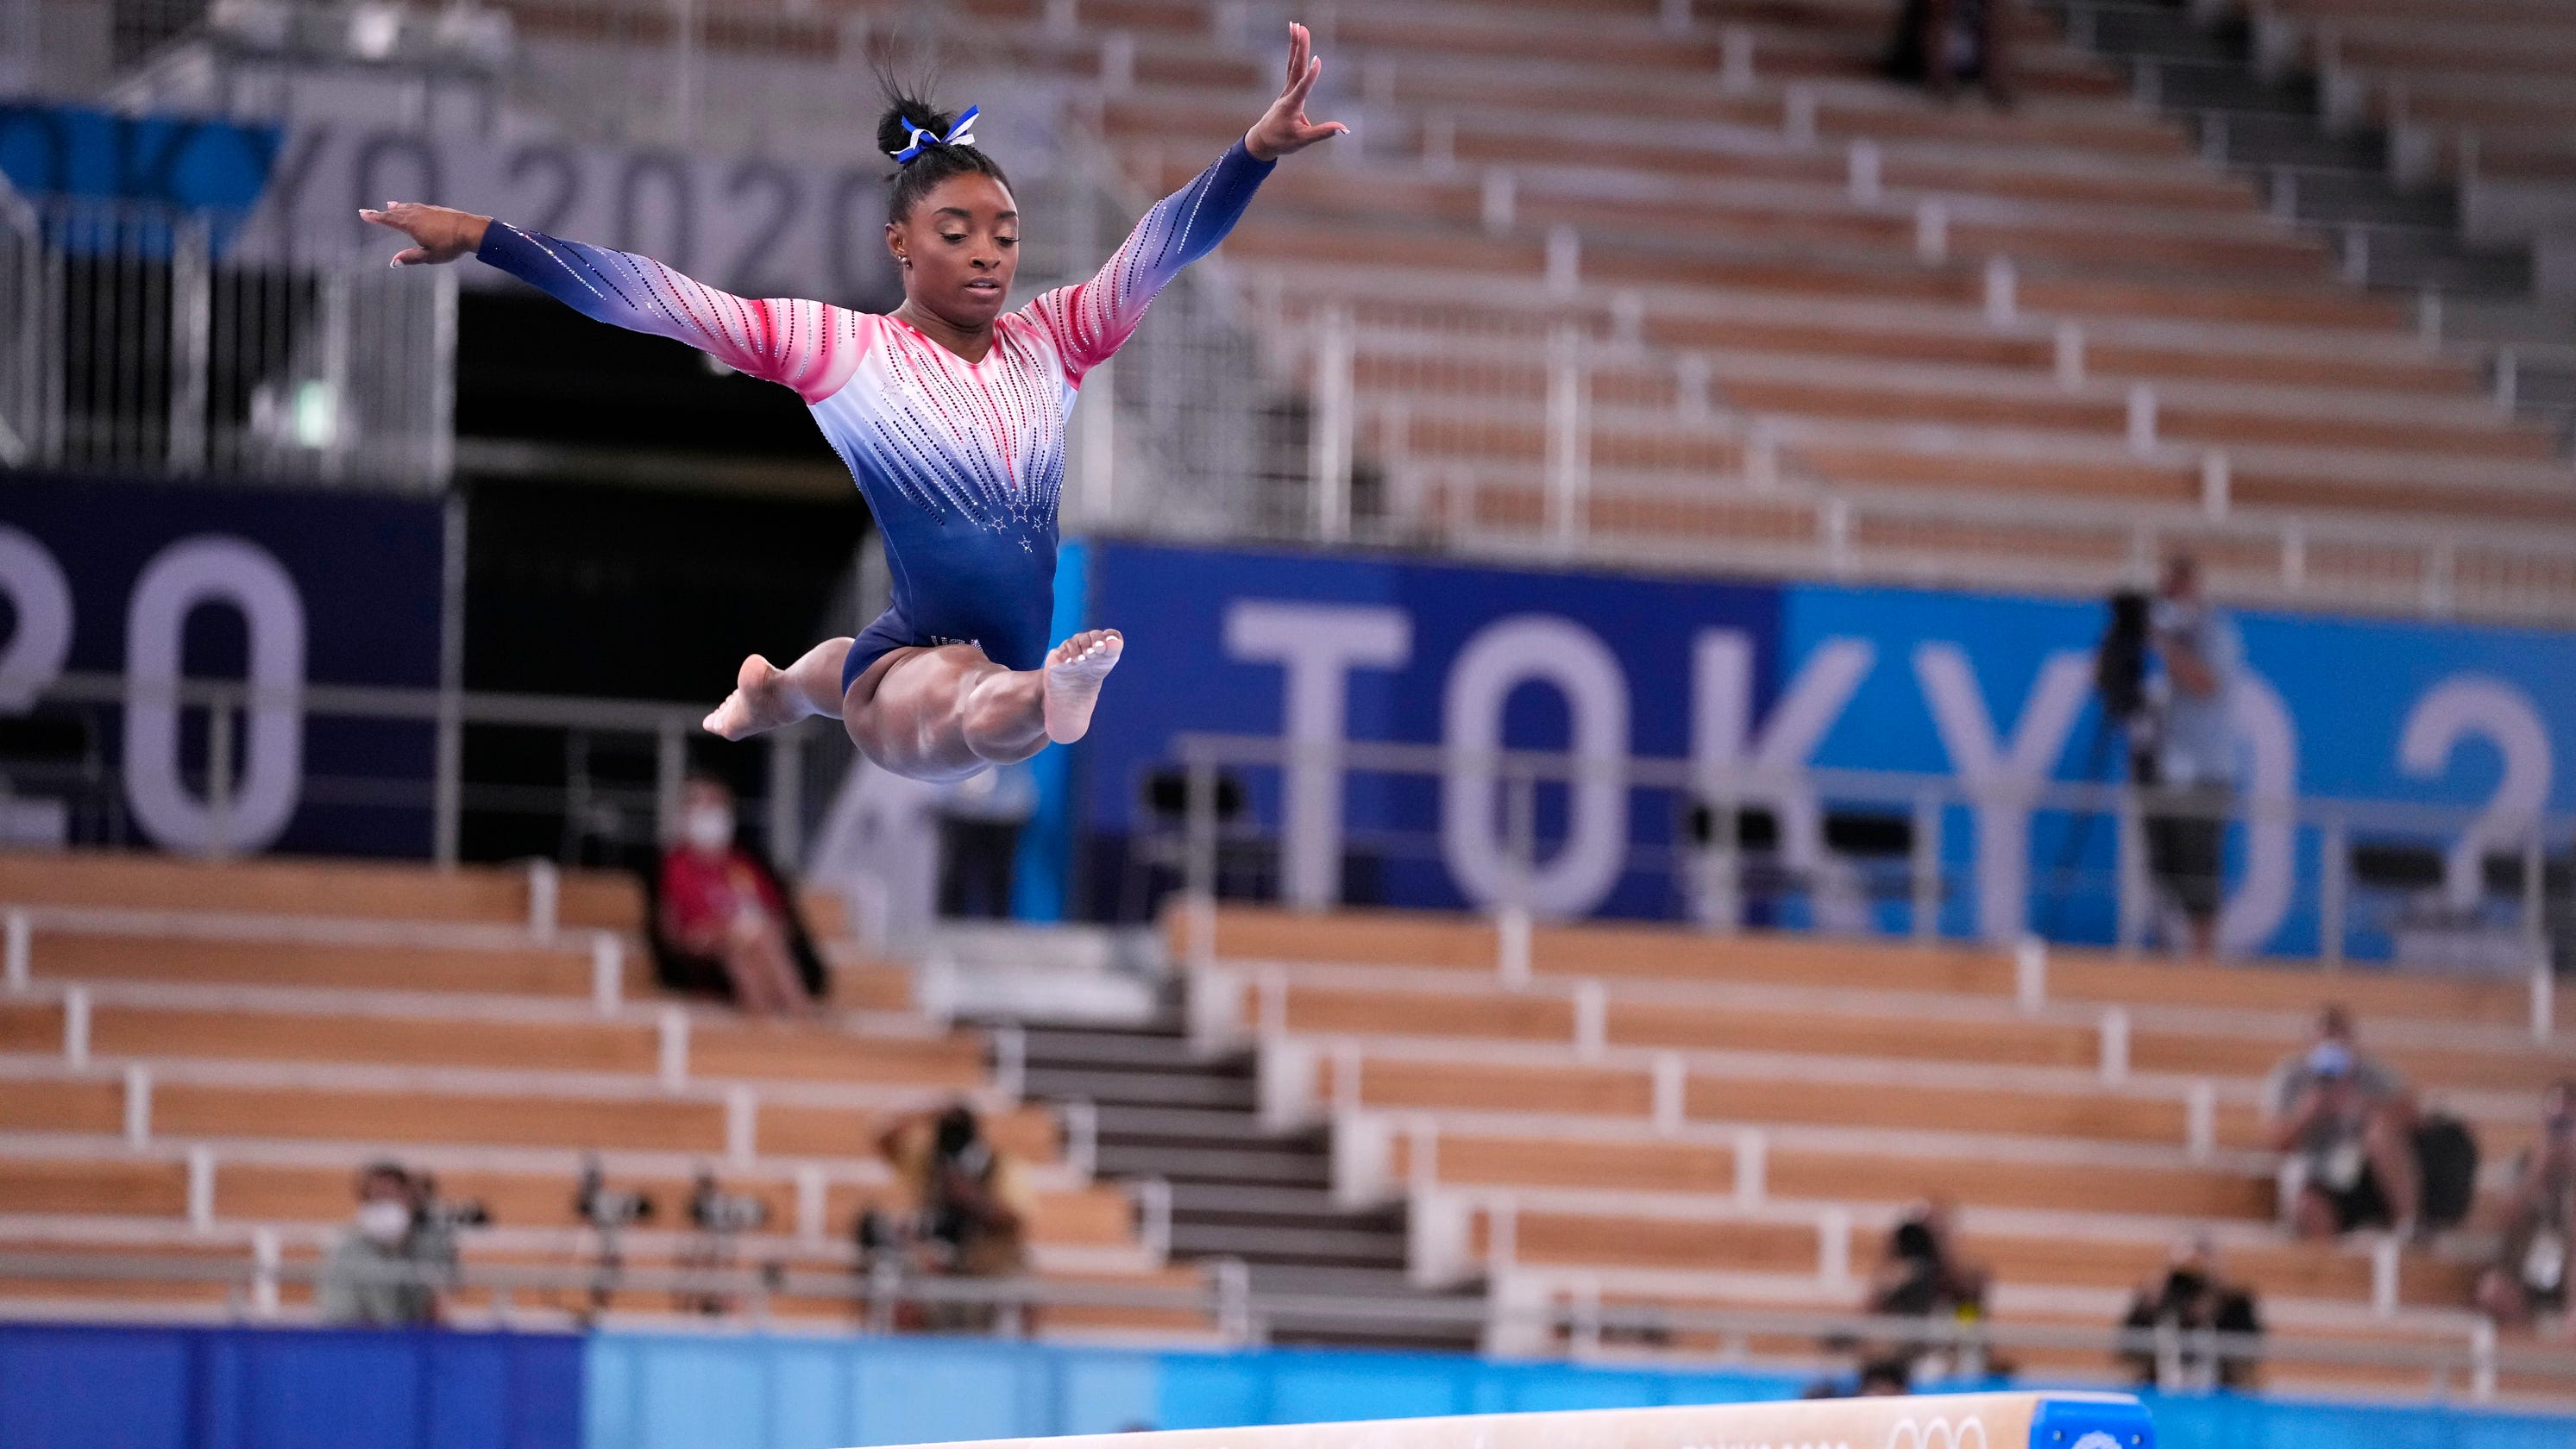 Simone Biles reveals that her aunt died during Tokyo Olympics - USA TODAY